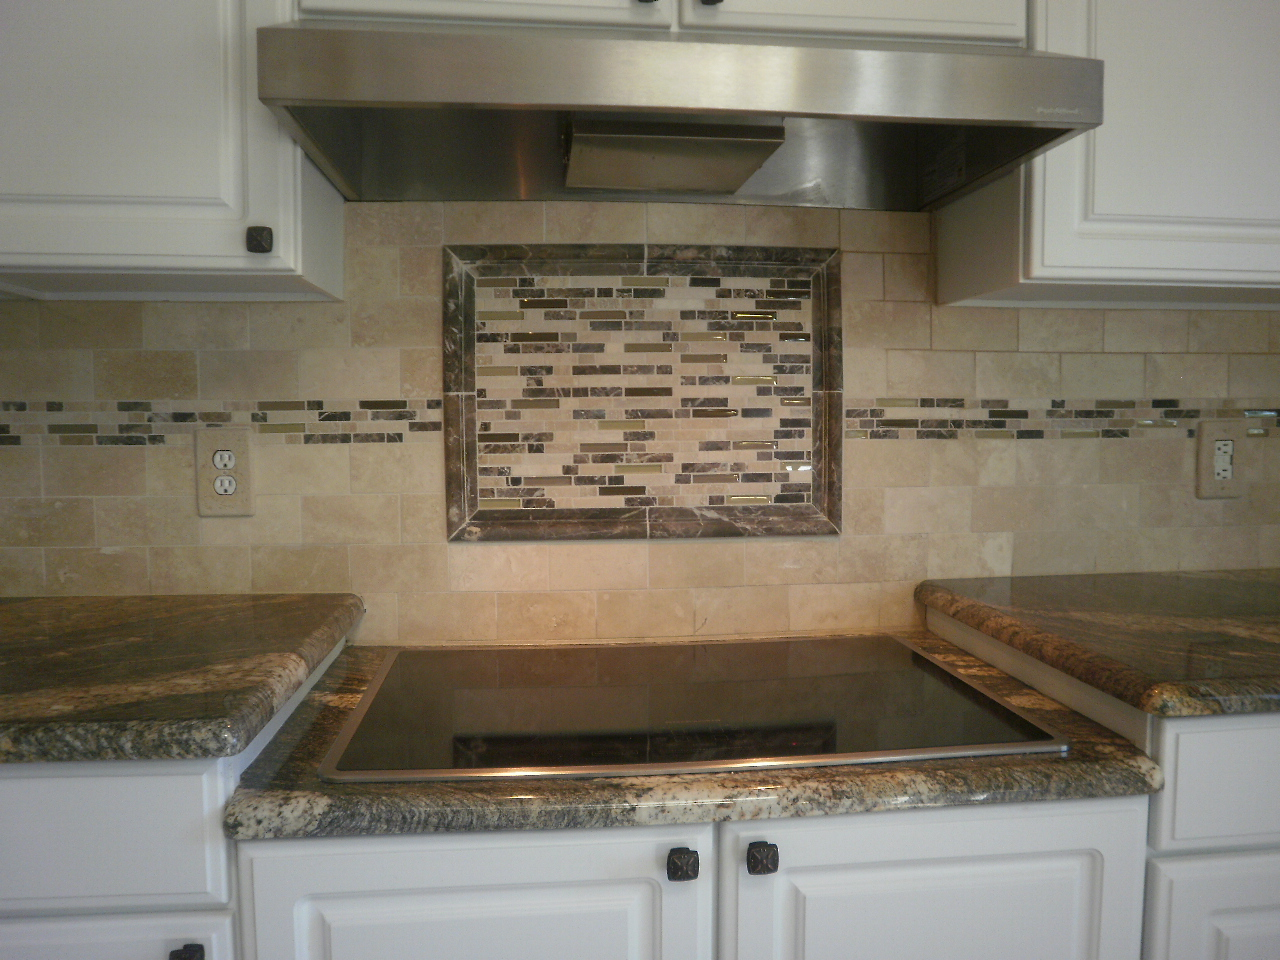 Integrity installations a division of front range backsplash june 2011 Kitchen tile backsplash